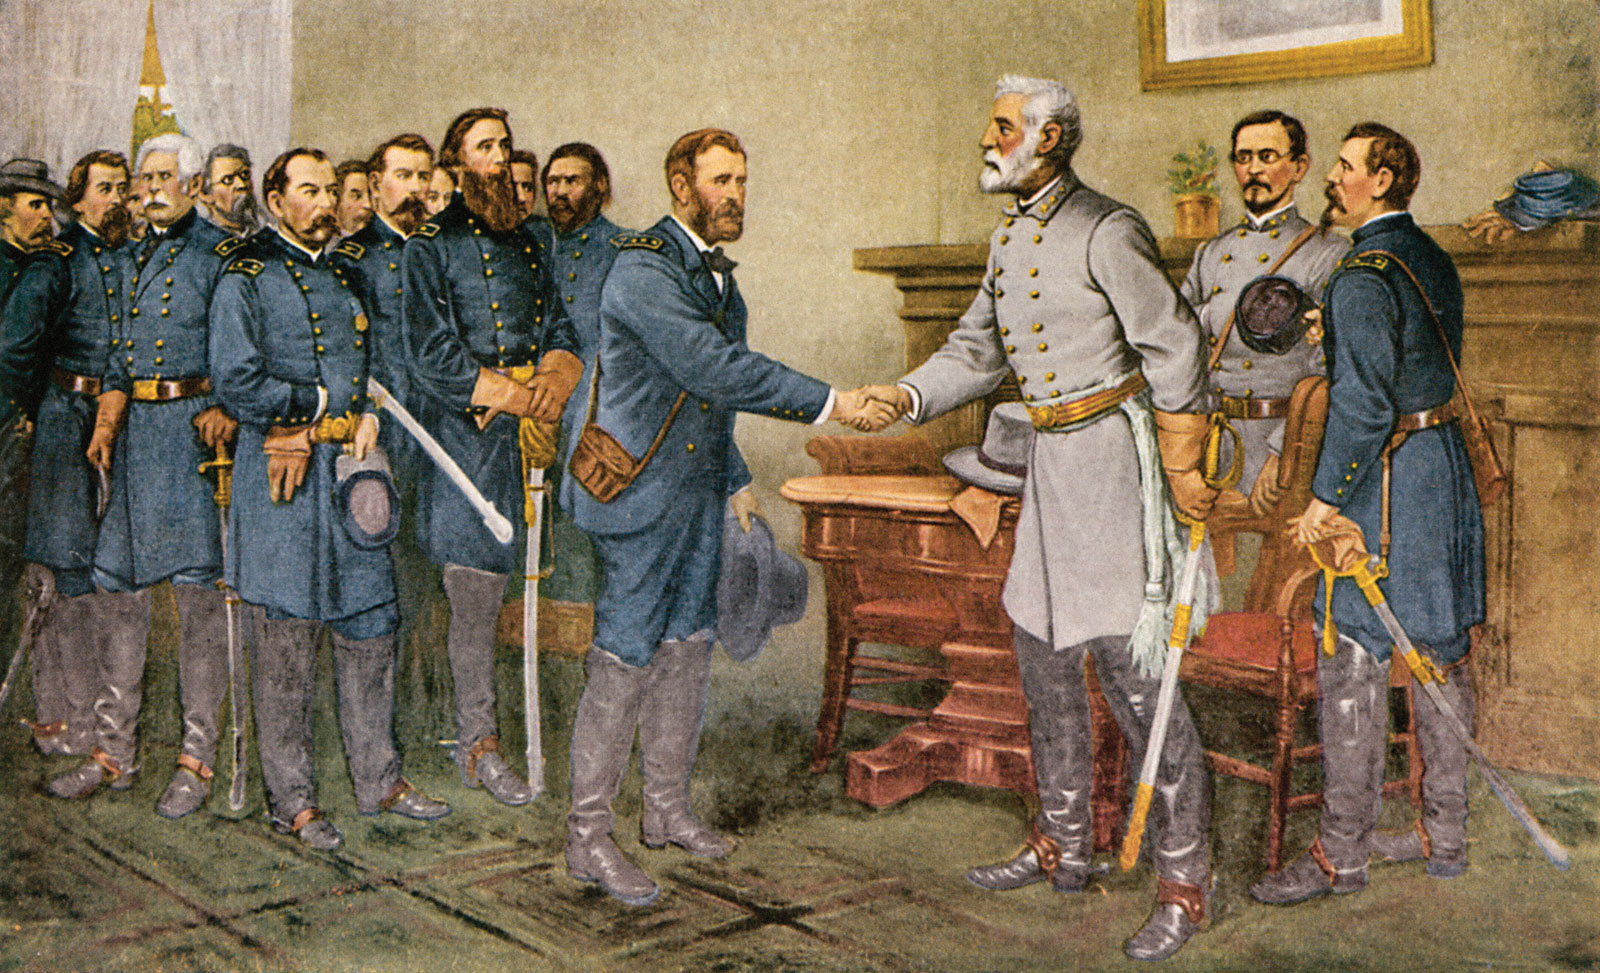 General Robert E. Lee surrenders at the Appomattox Court House in Virginia